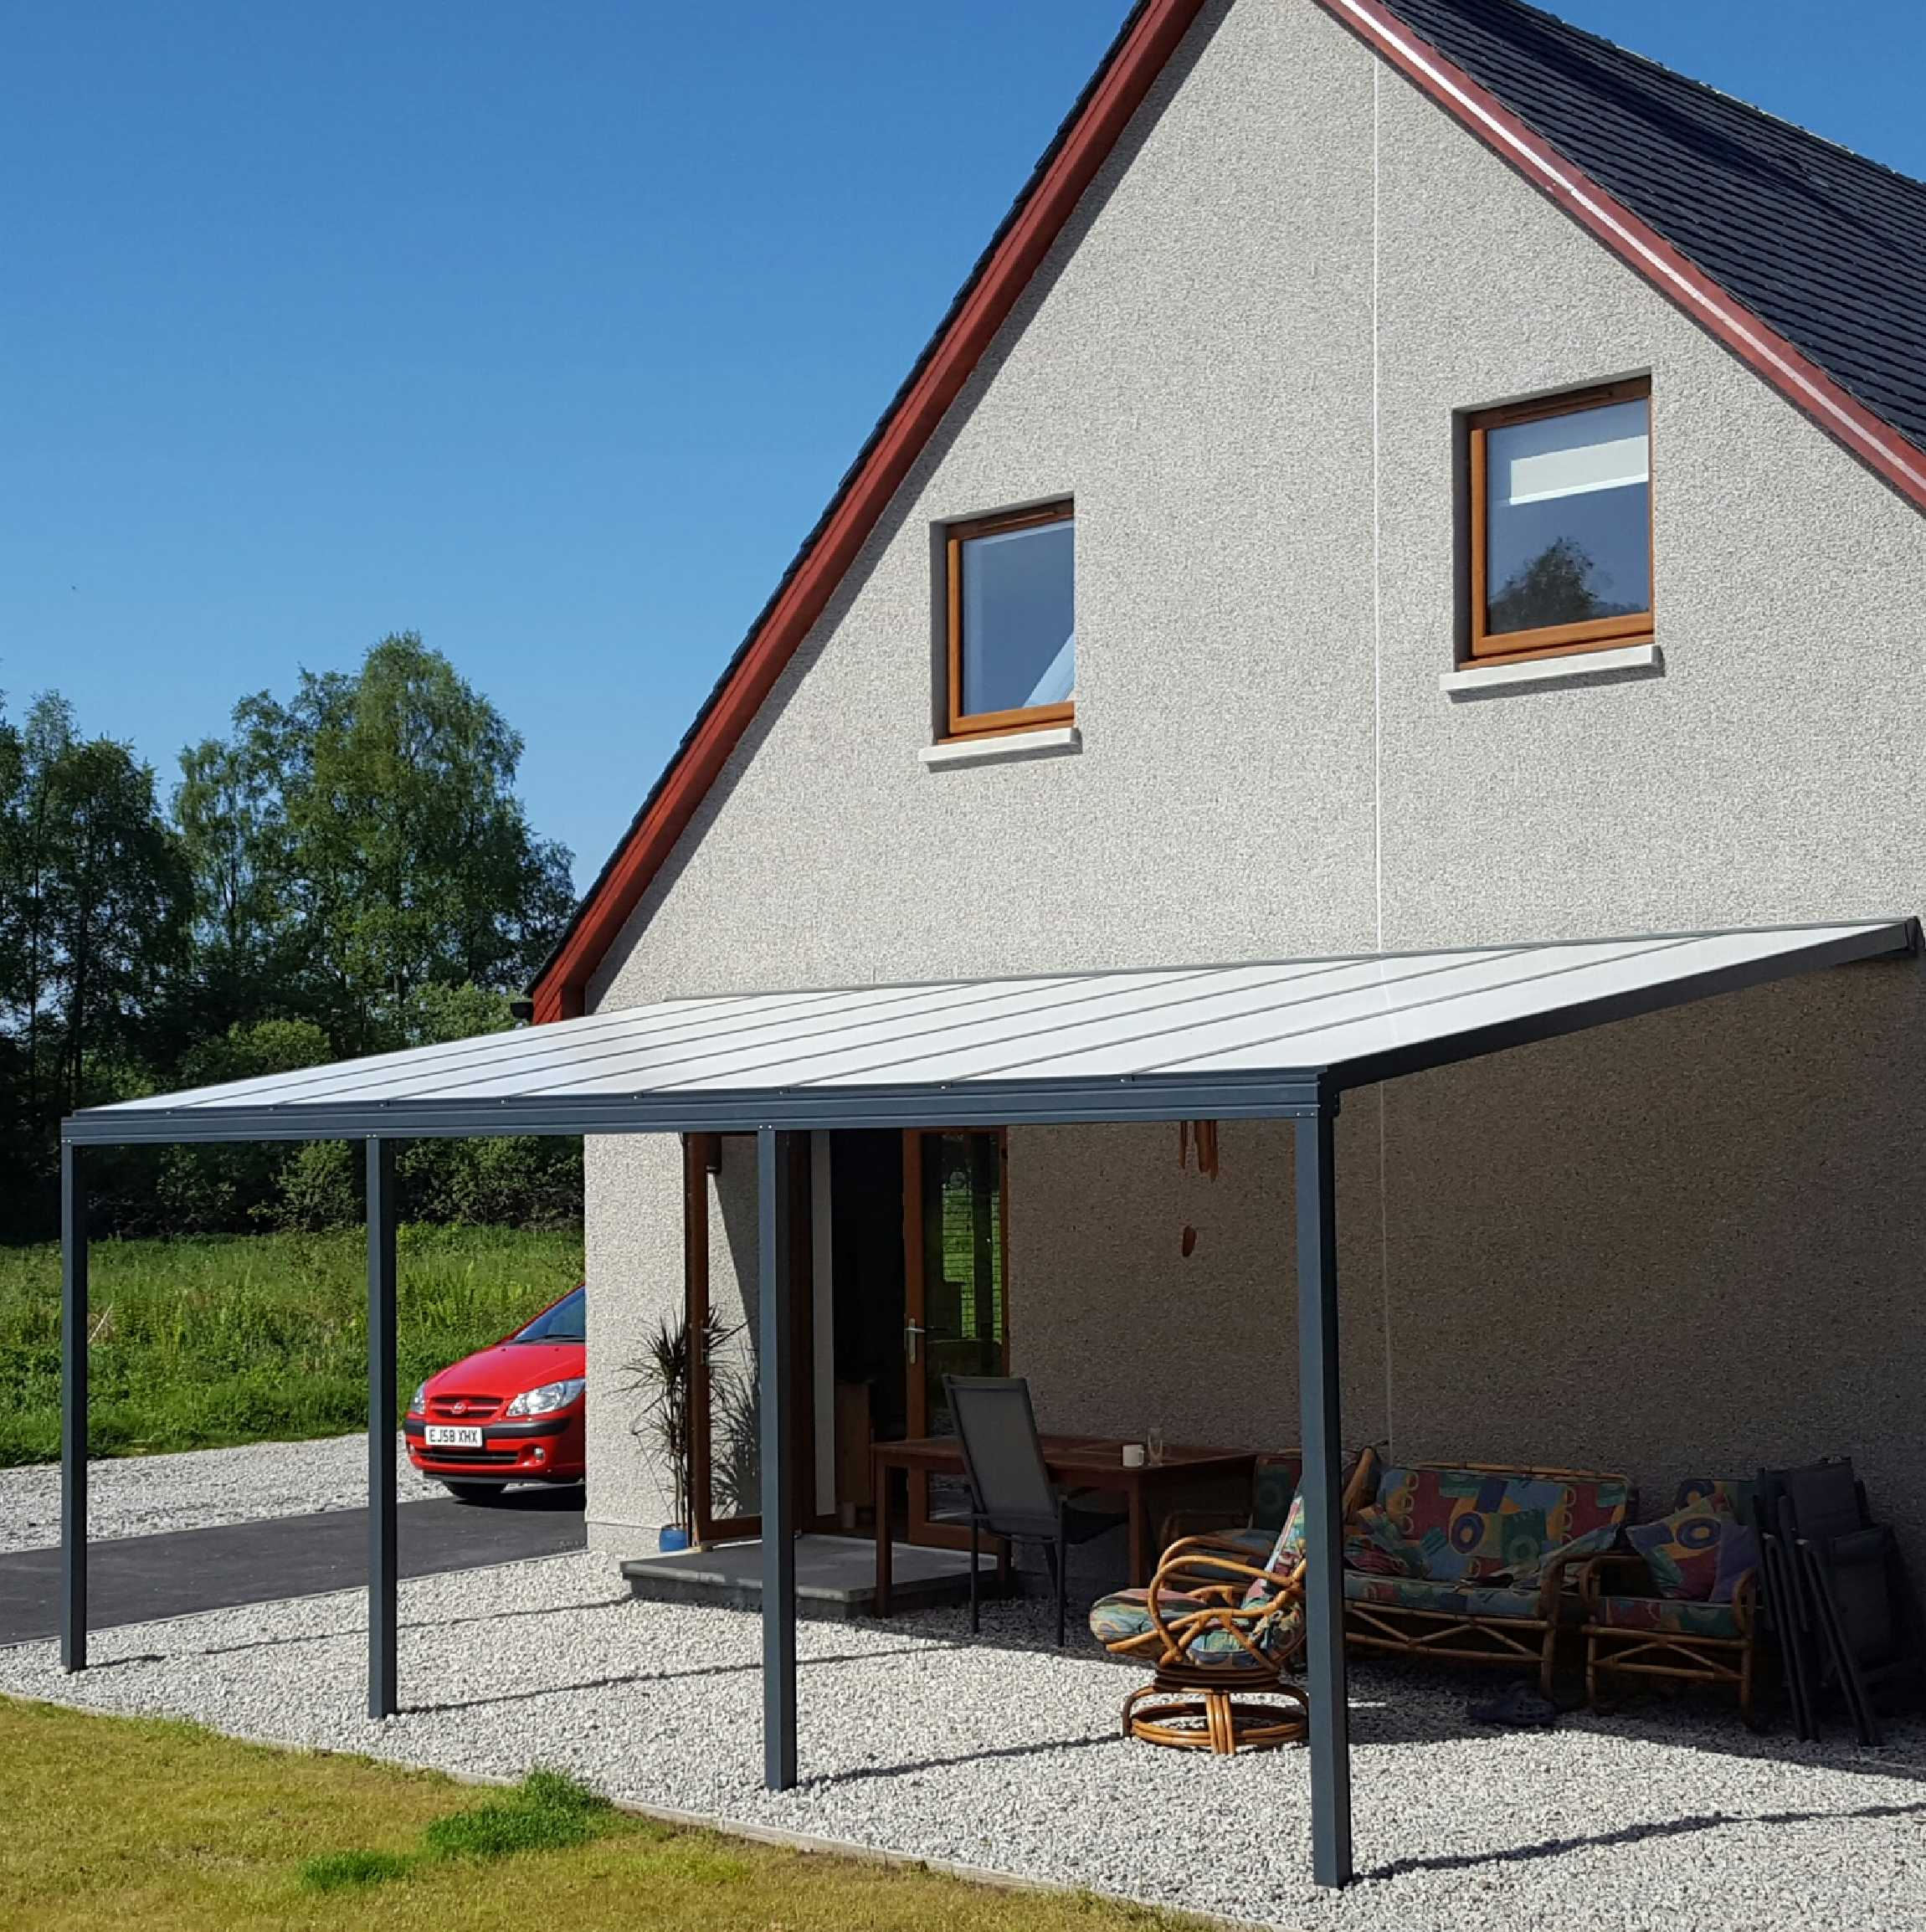 Great selection of Omega Smart Lean-To Canopy, Anthracite Grey, 16mm Polycarbonate Glazing - 6.3m (W) x 3.5m (P), (4) Supporting Posts